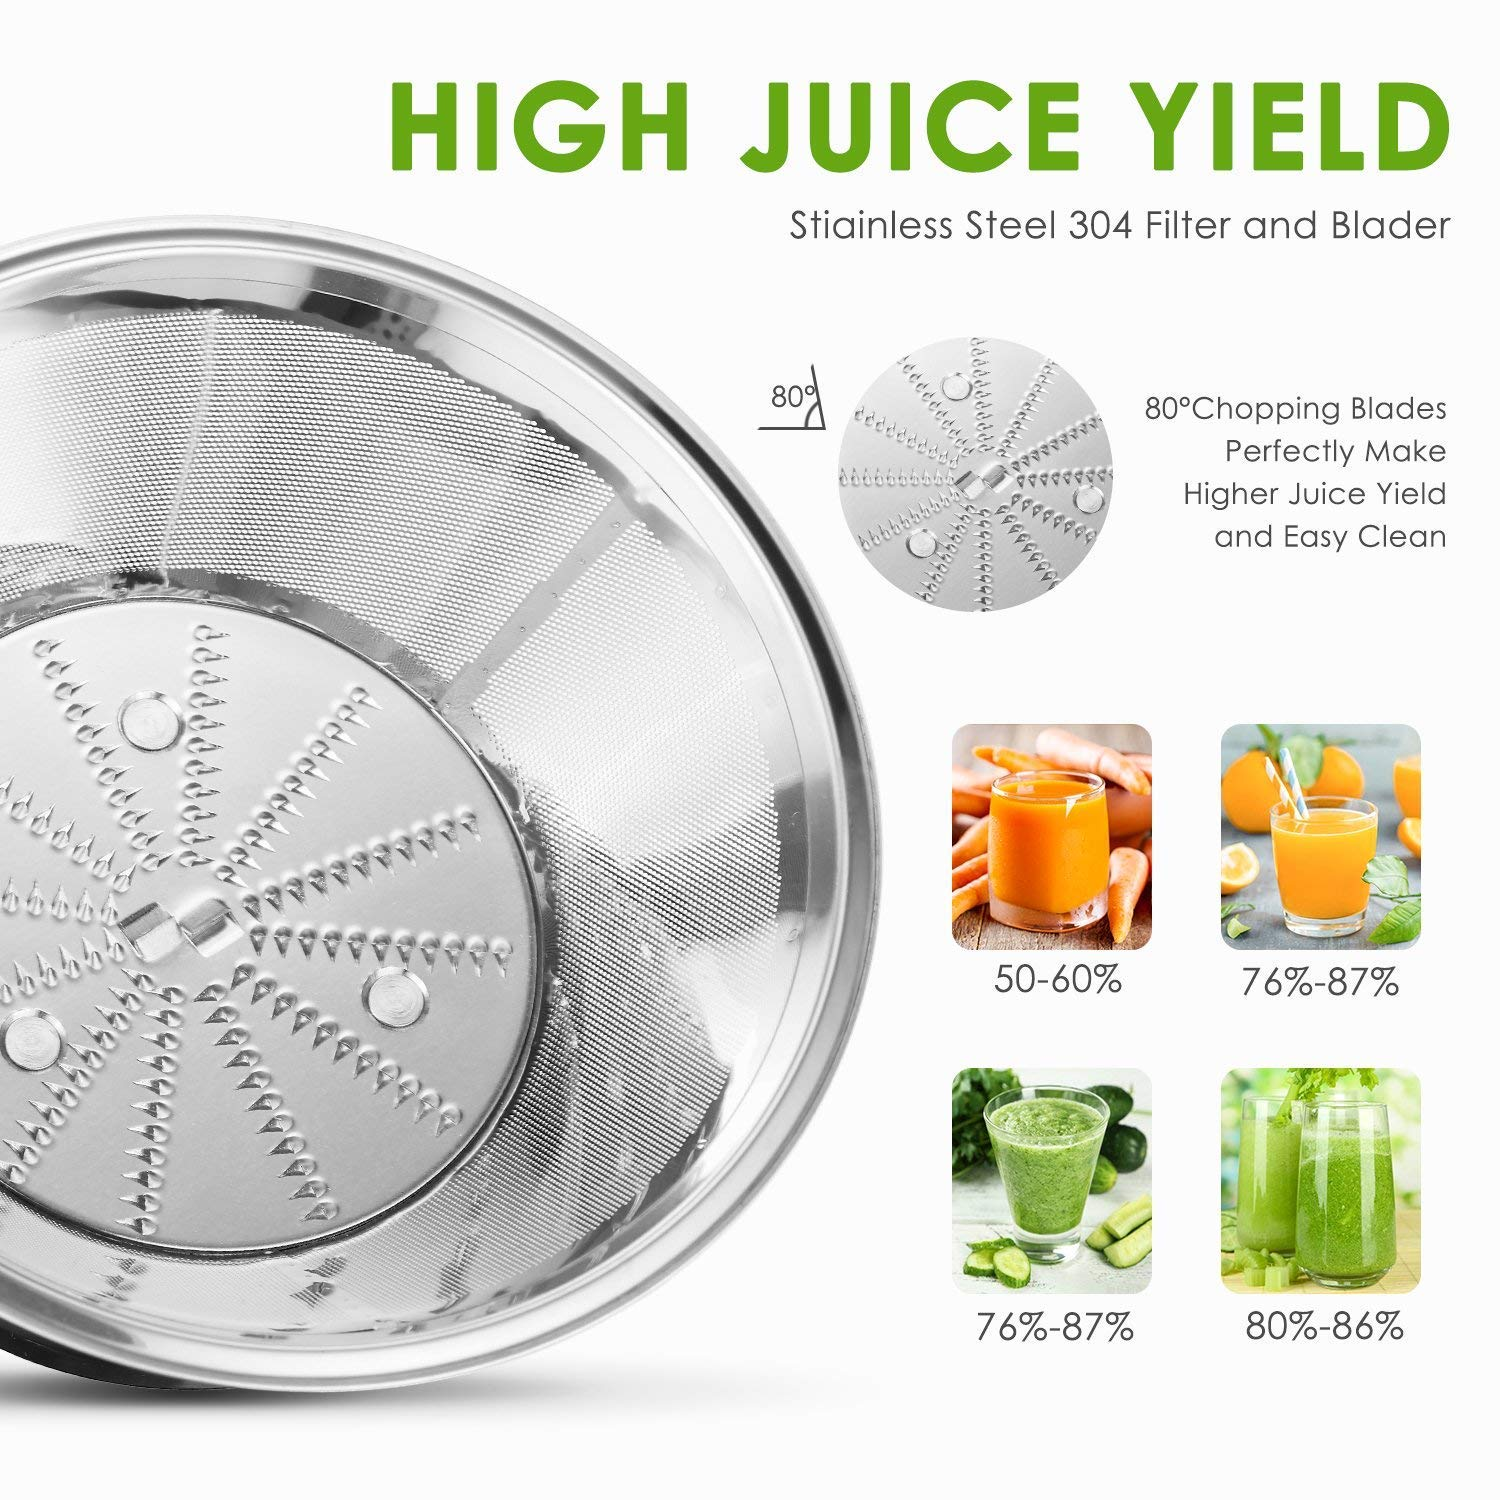 Non-Slip Feet Aicok Juicer Anti-drip BPA Free 3 Speed 400W High Power Stainless Steel Juice Extractor for Fruit and Vegetable Wide Mouth Electric Centrifugal Juicer Machine with Pulse Function